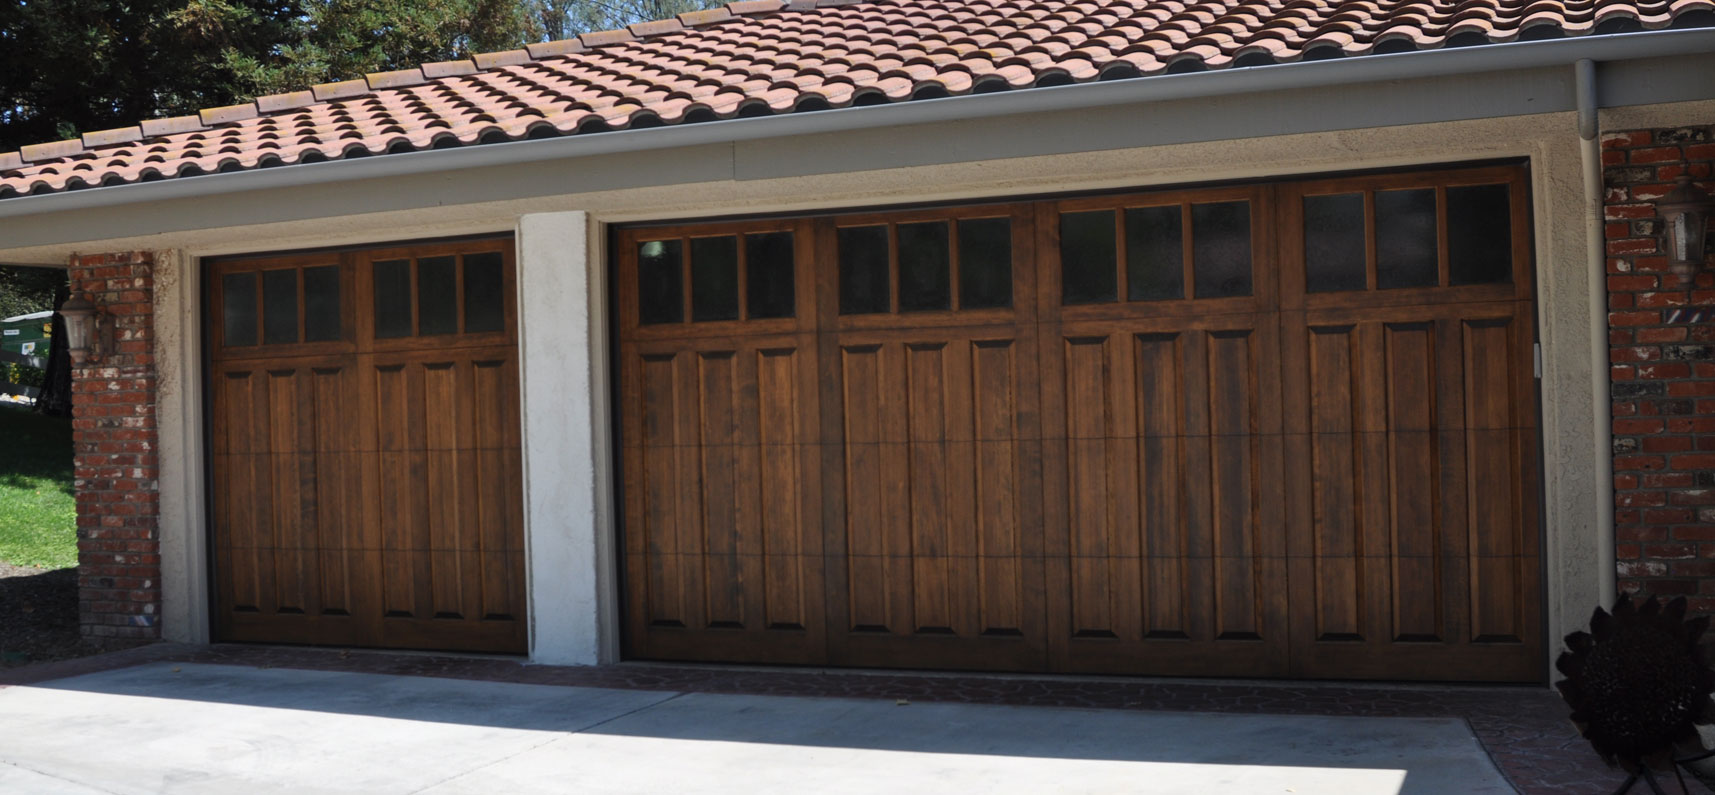 Doors To Garage: Full-Custom Garage Doors By Elegant